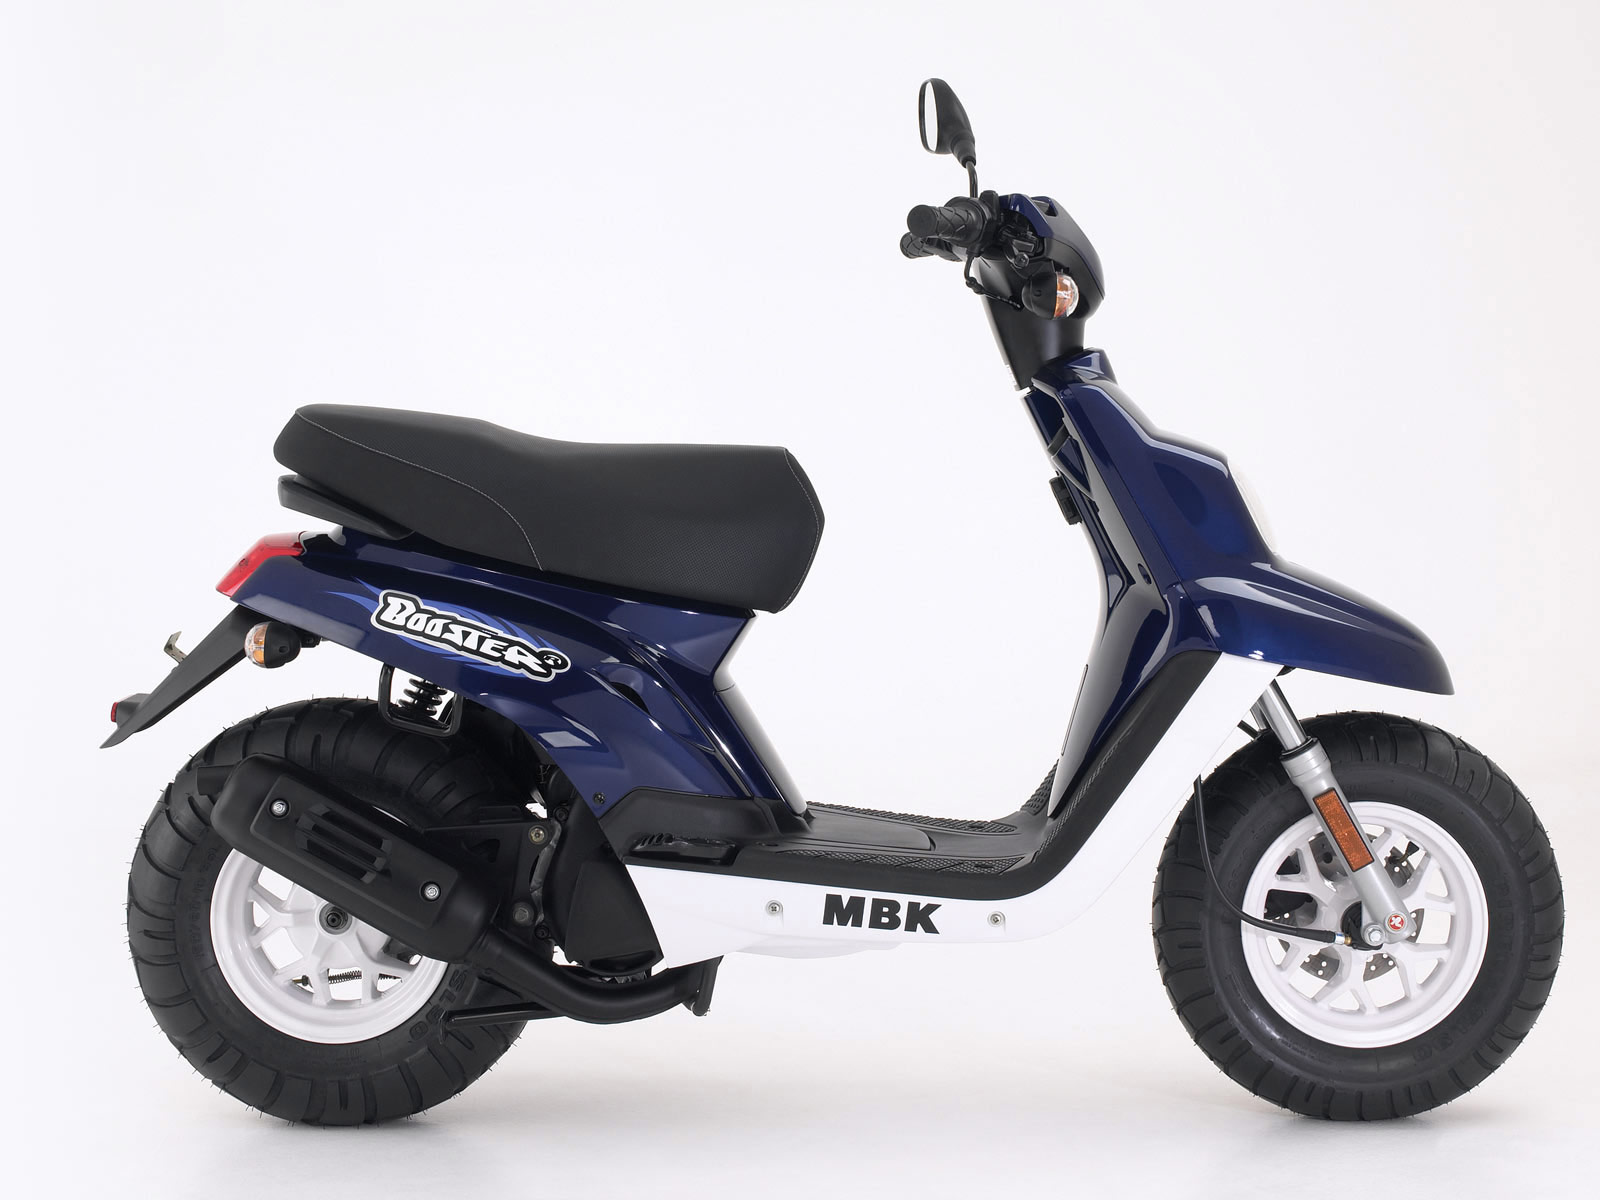 2005 mbk booster scooter pictures specifications. Black Bedroom Furniture Sets. Home Design Ideas